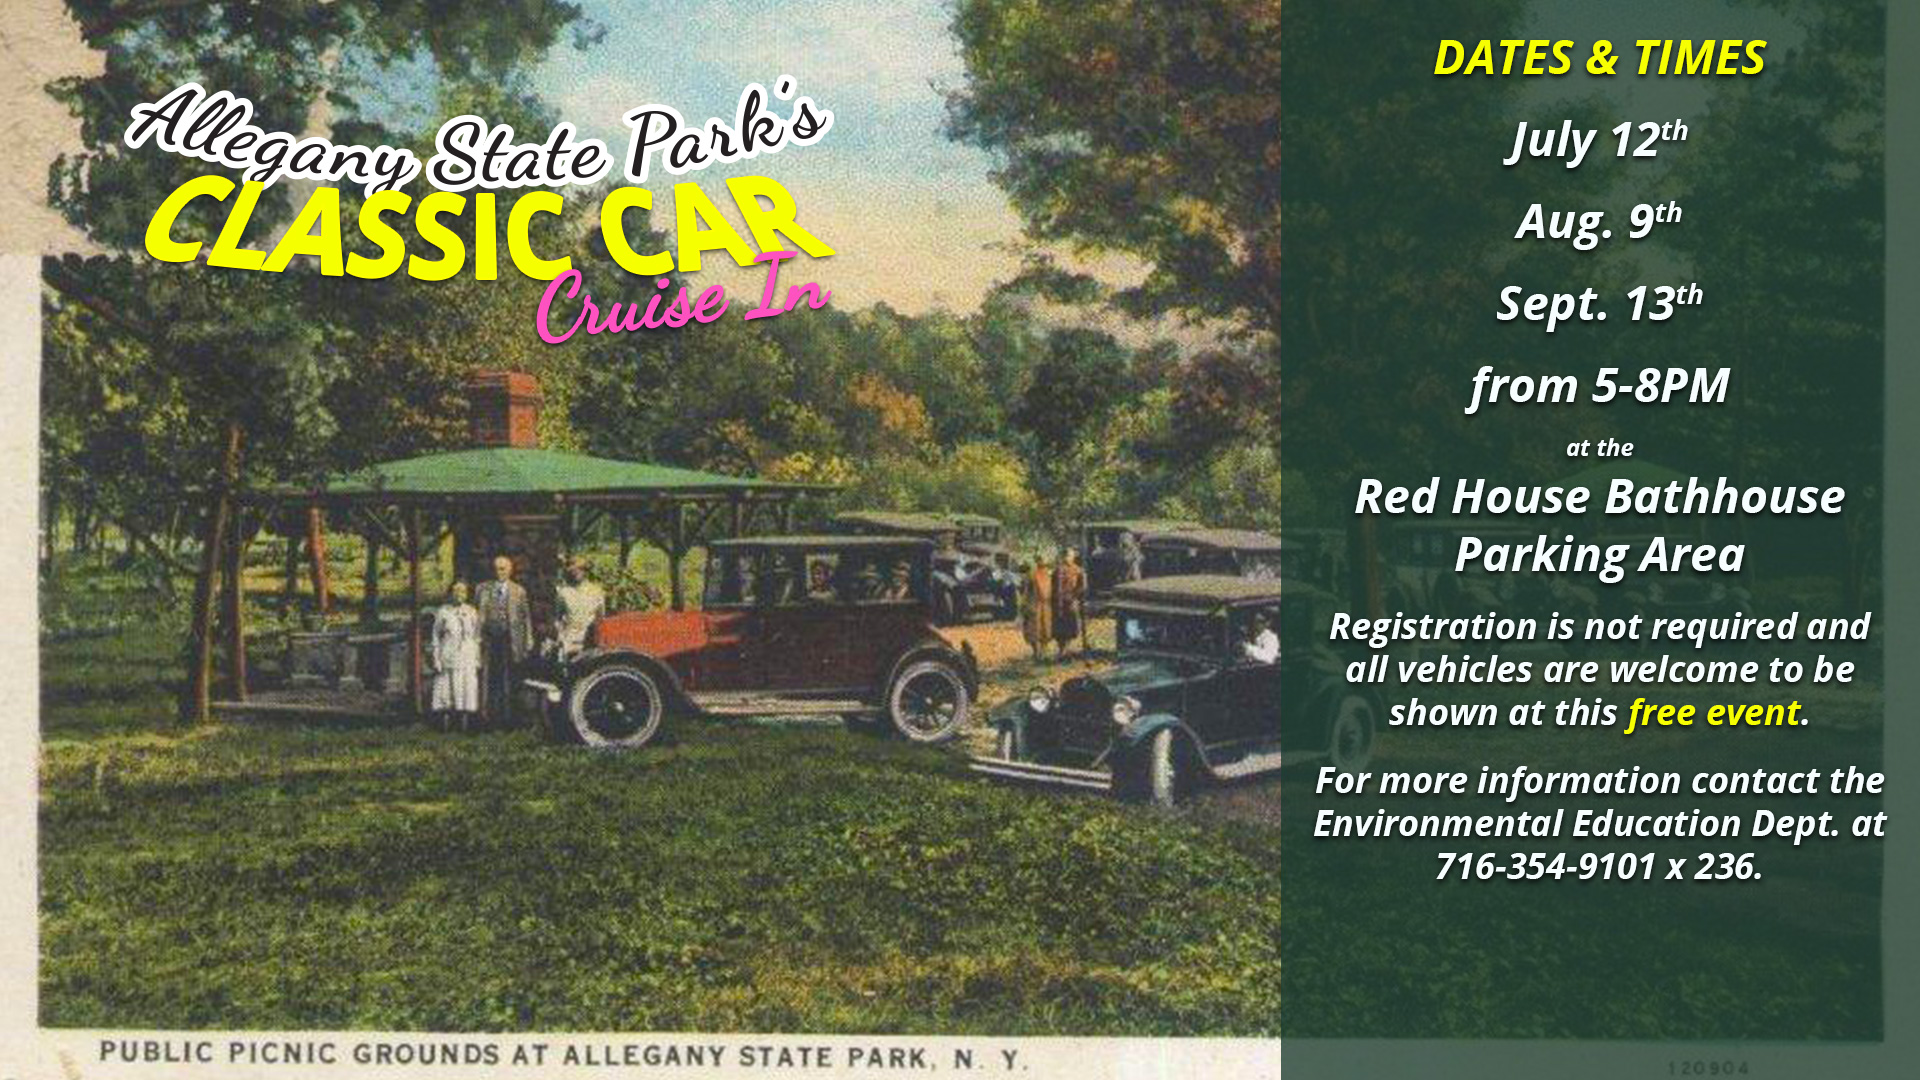 Classic Car Cruise In at Allegany State Park